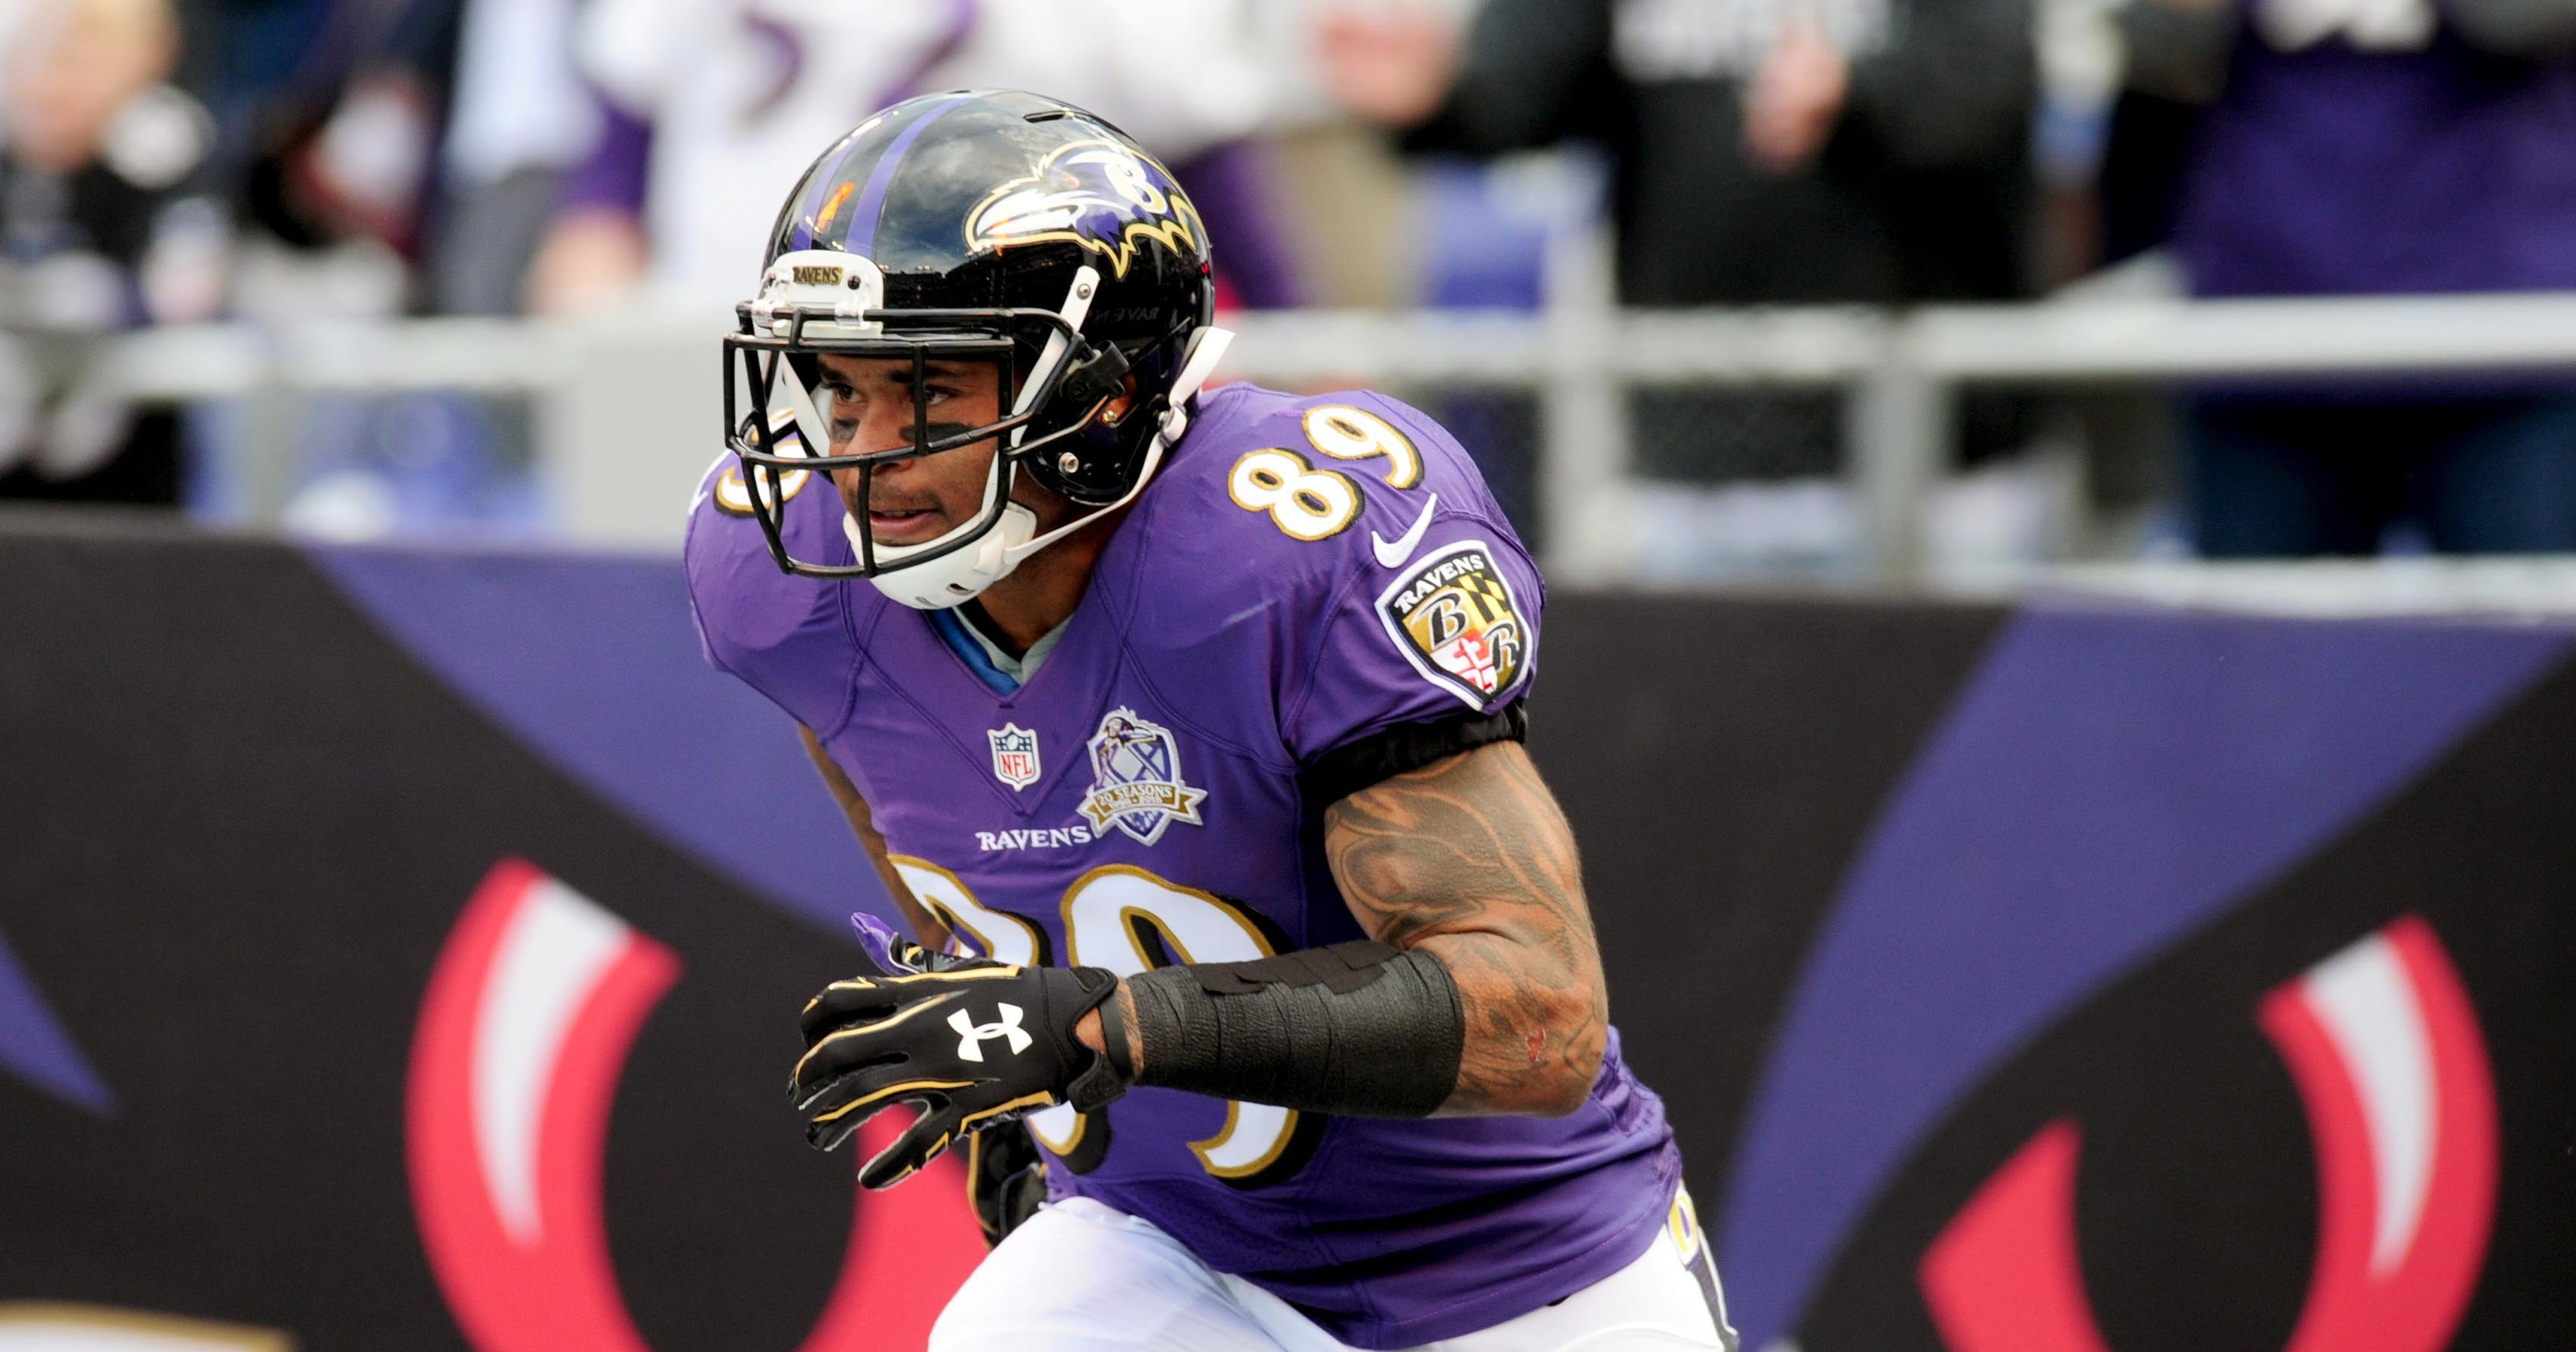 NFL Week 8 injuries  Steve Smith suffers season-ending torn Achilles 8f4afe90a6db